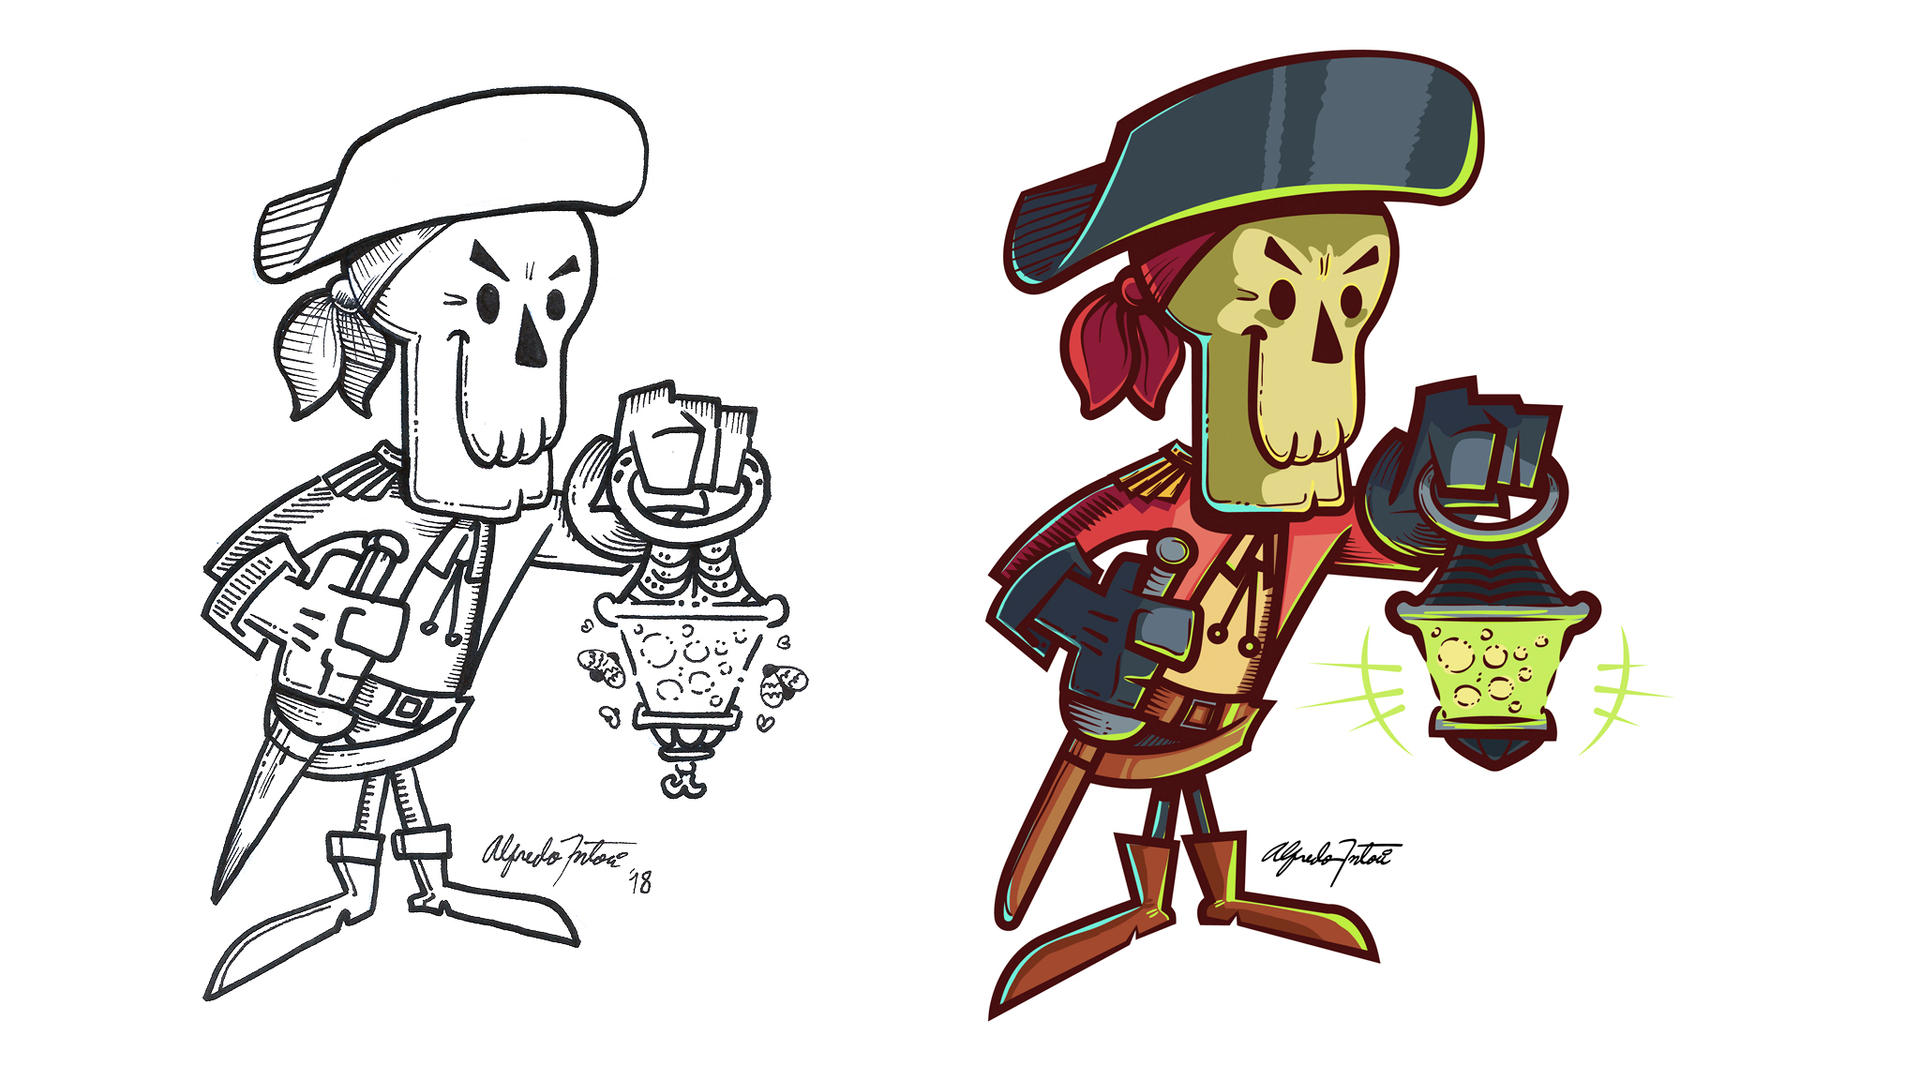 Pirate Skeleton Character. by intocidraw